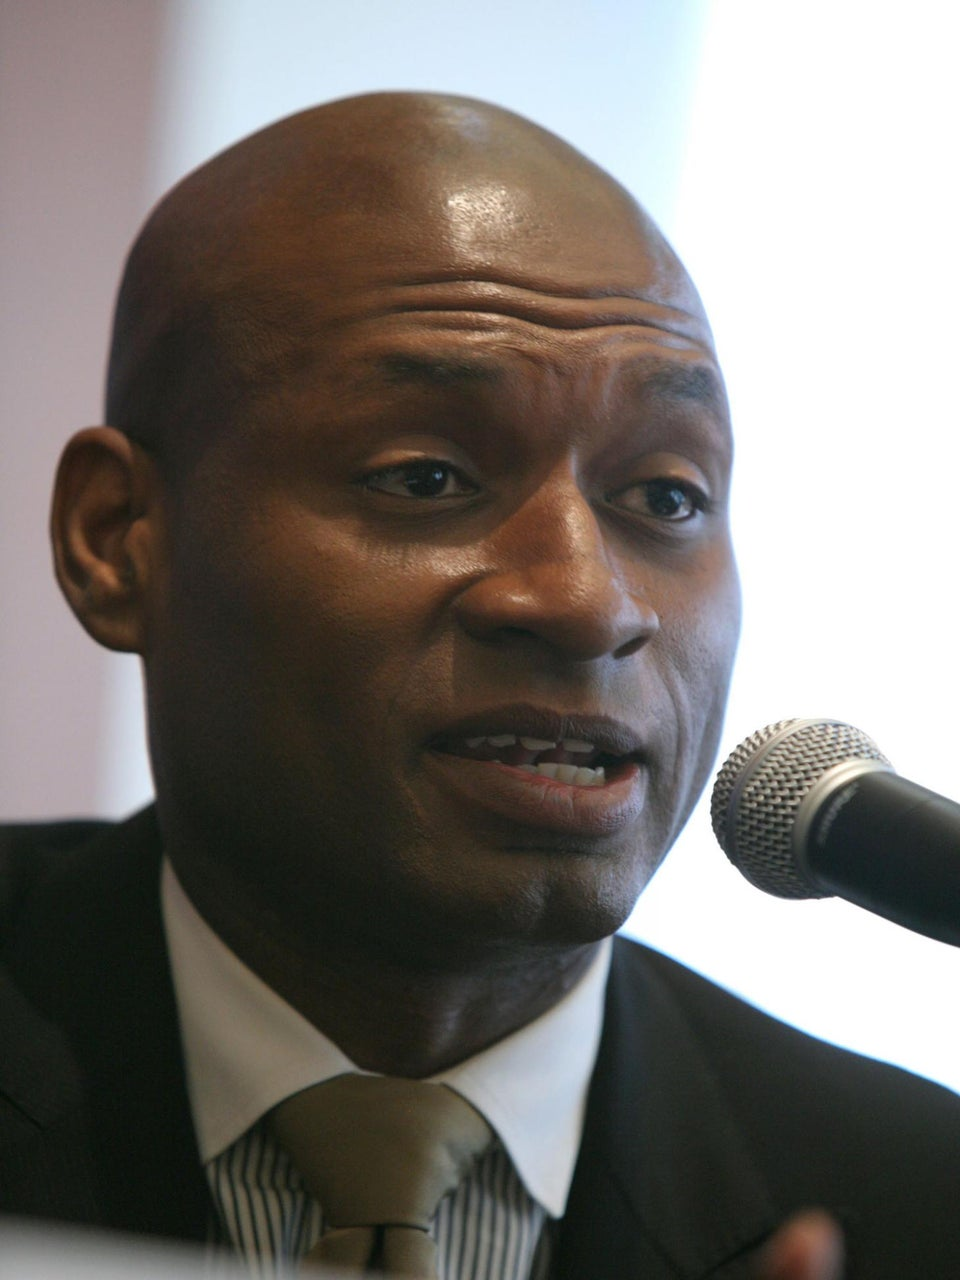 Yale Police Under Investigation After Holding Prominent Journalist Charles Blow's Son at Gunpoint